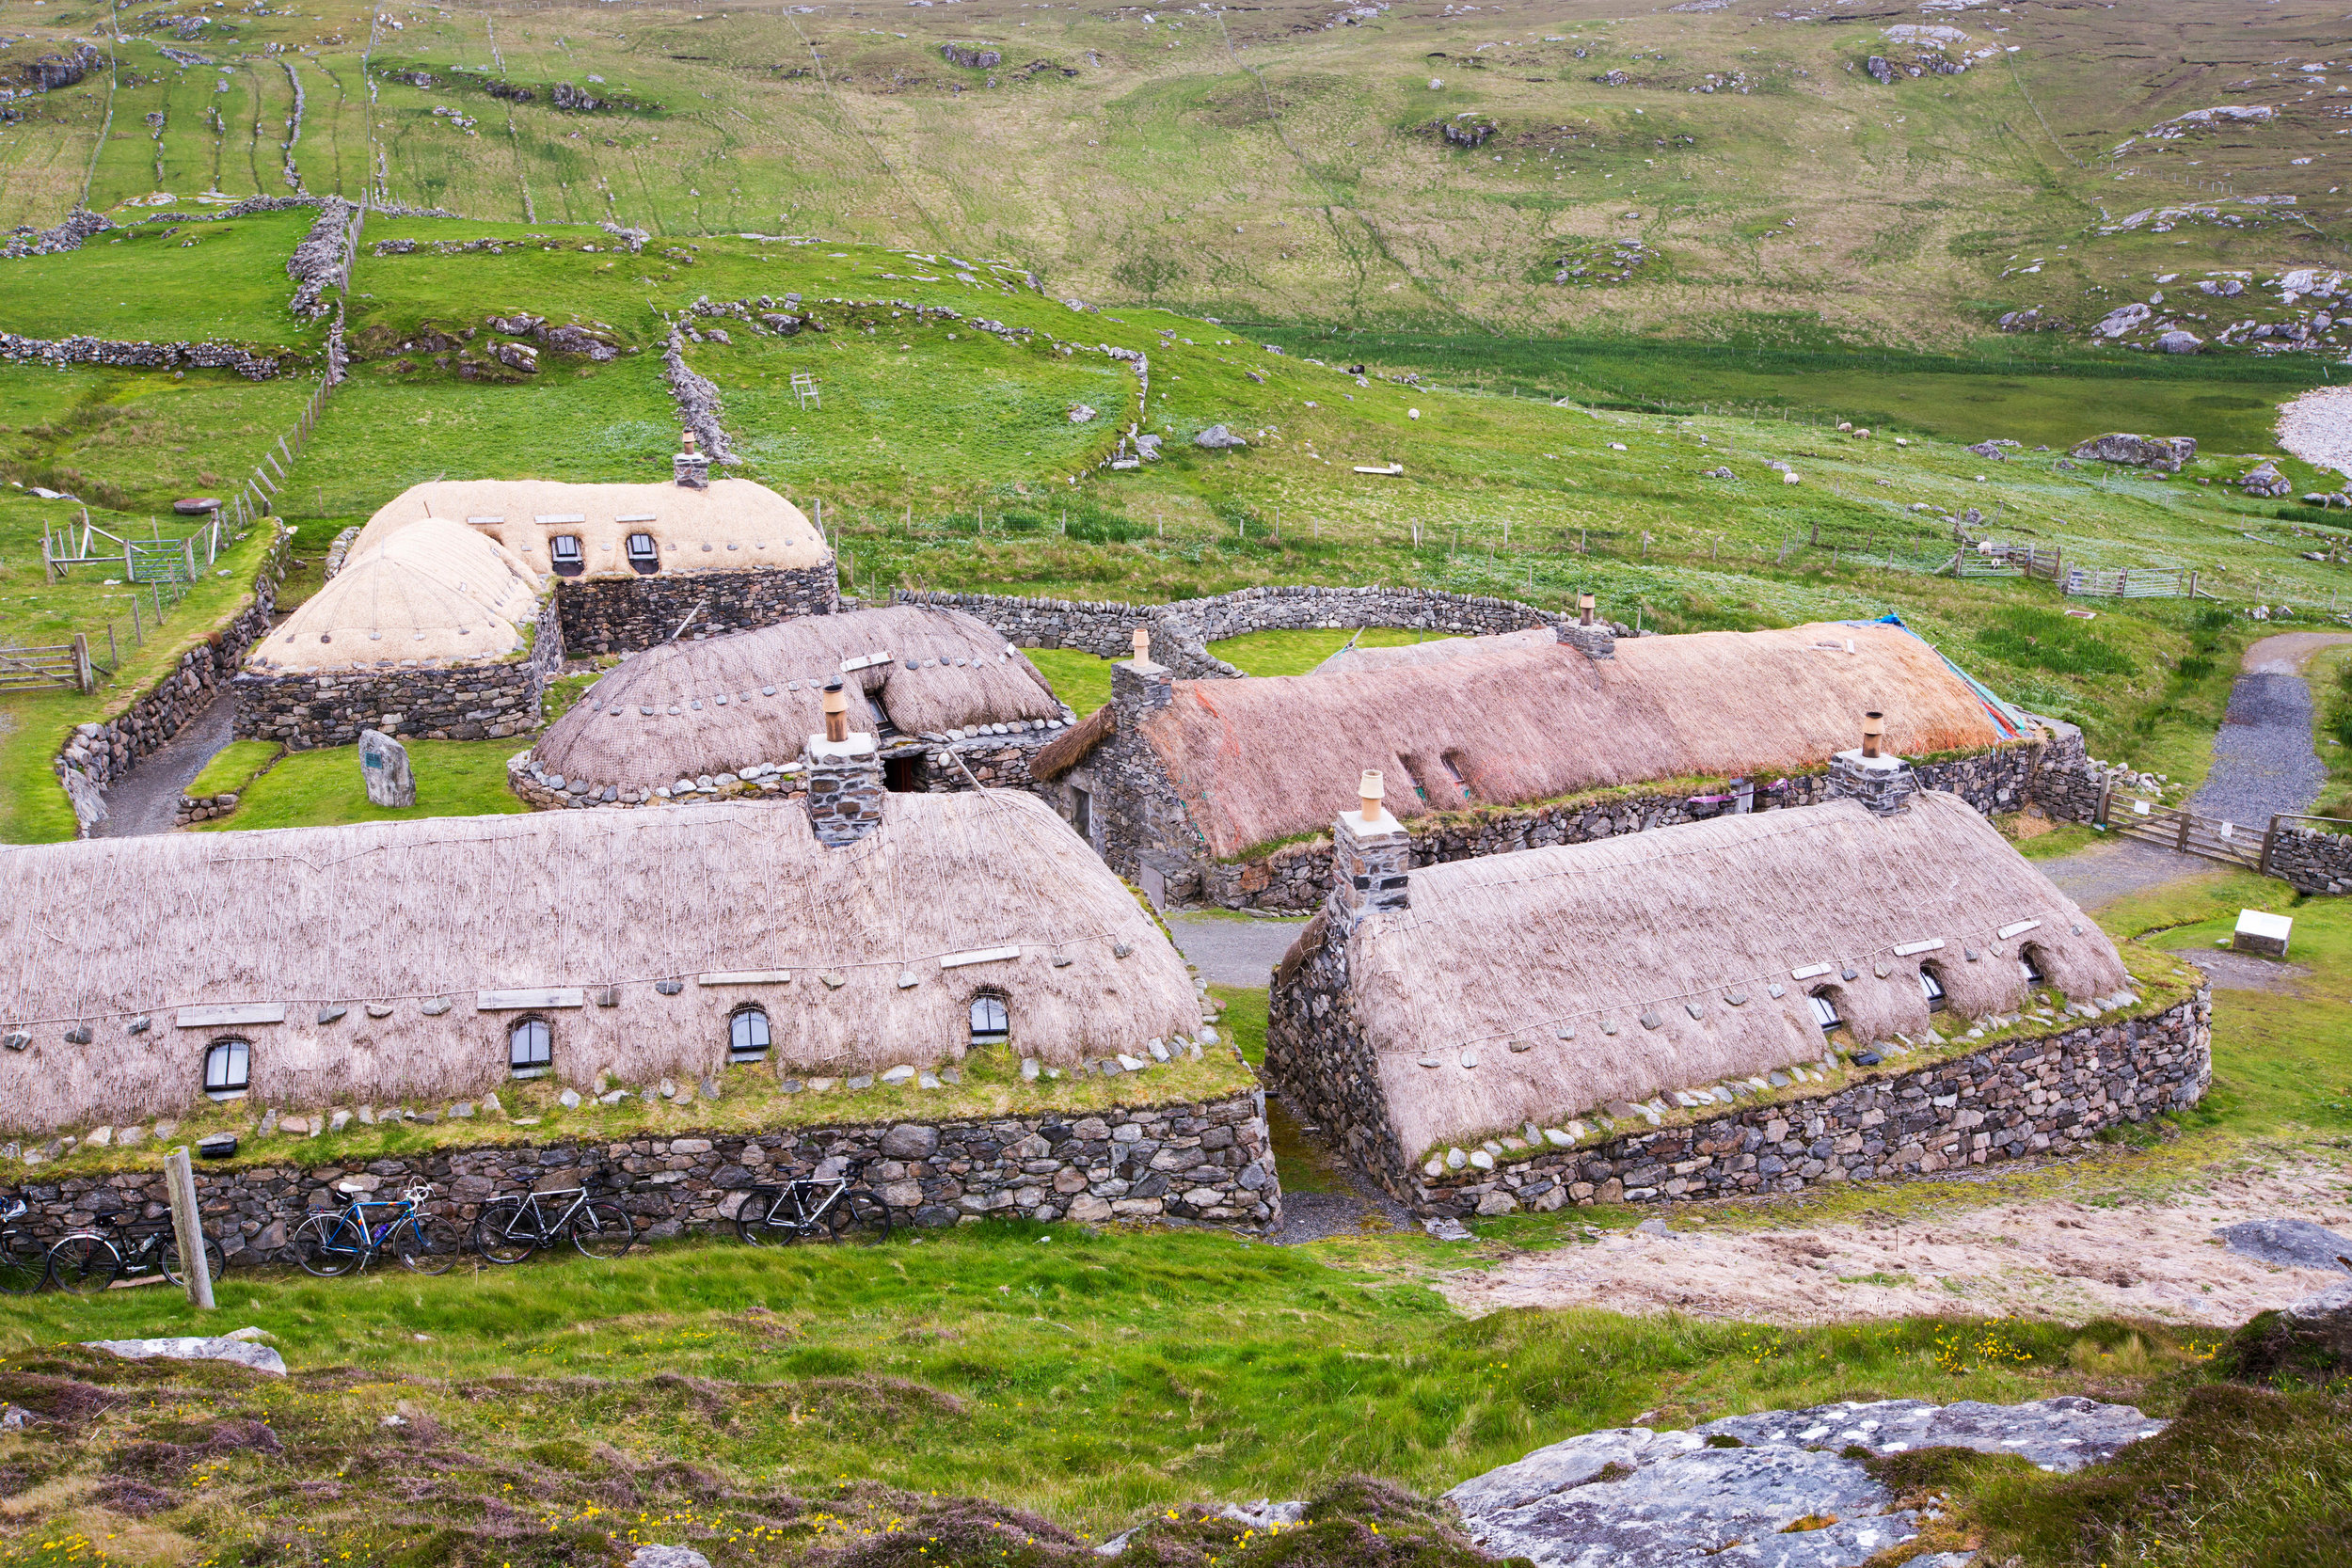 Fig 1. Gearrannan, preserved clachan on the Isle of Lewis. Photograph by Ashley Cooper